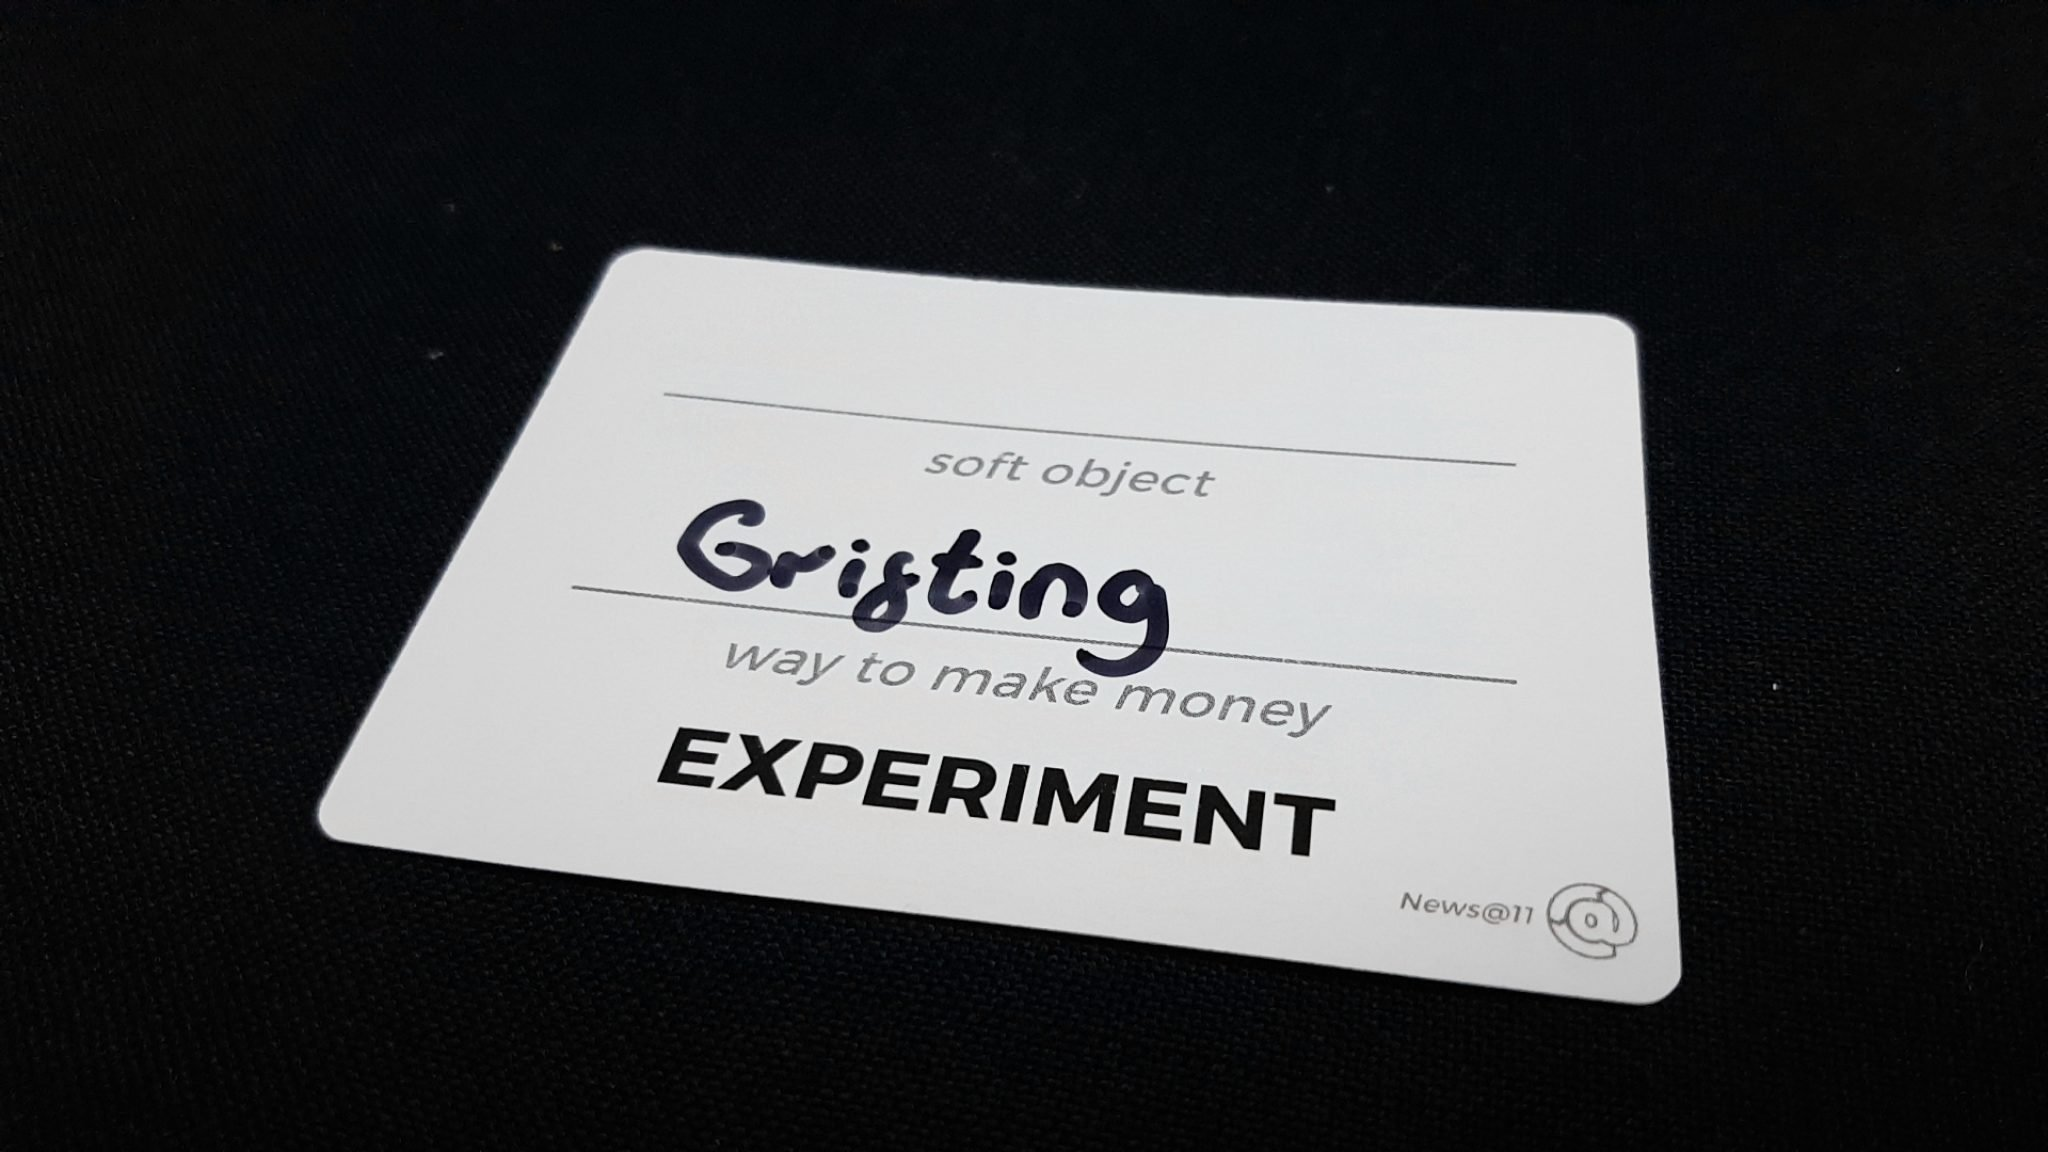 Grifting and Experiment cue card